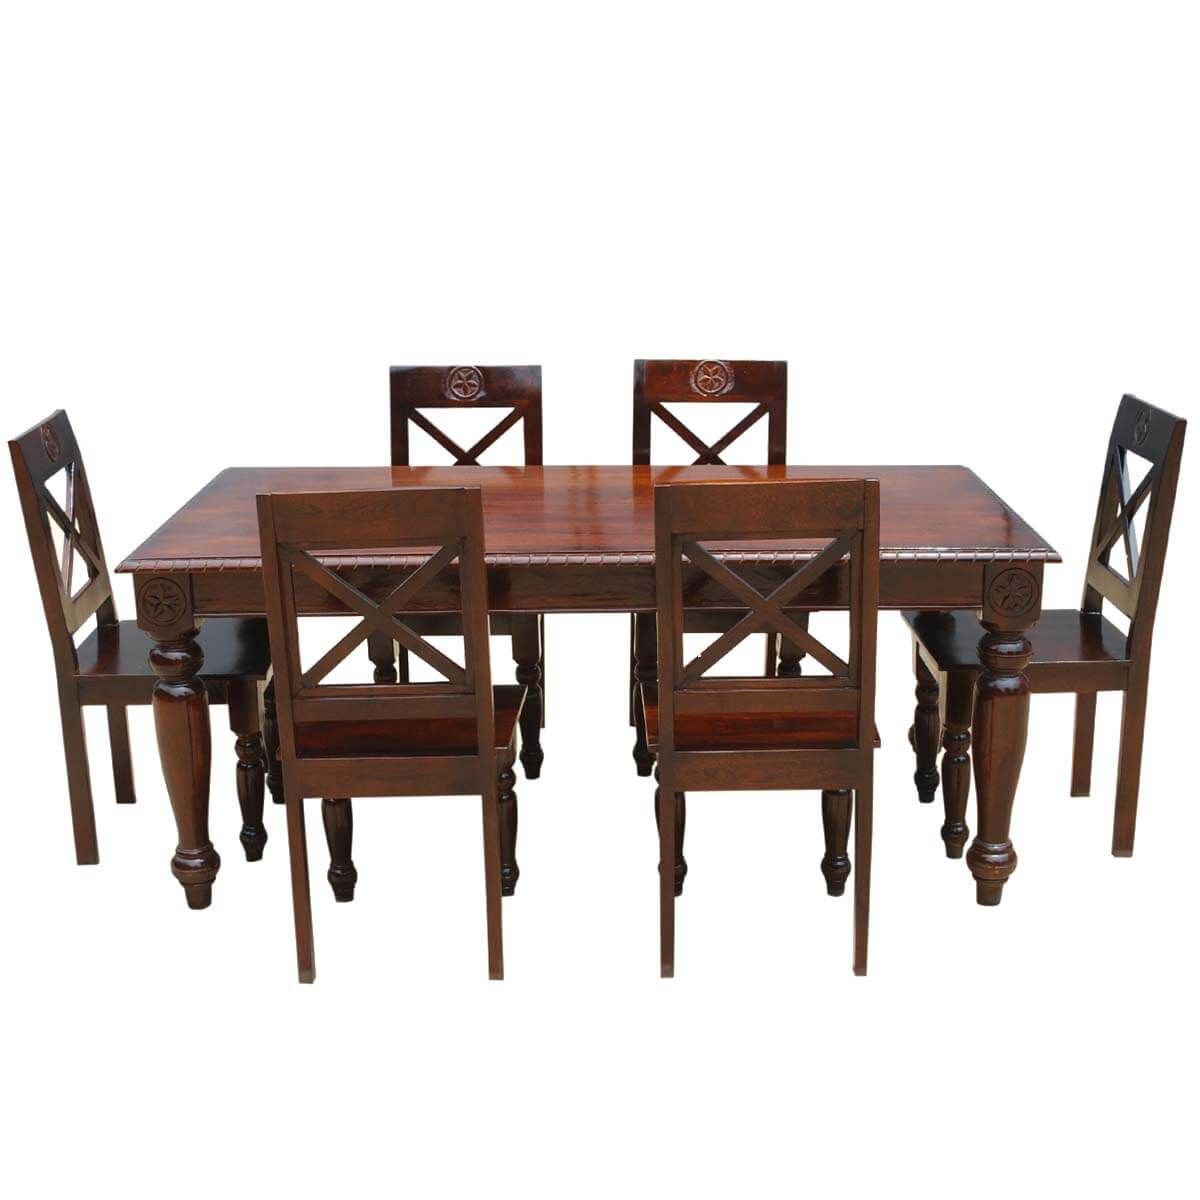 Rustic Dining Table And Chairs: Texas Rustic Dining Table And Chairs Set